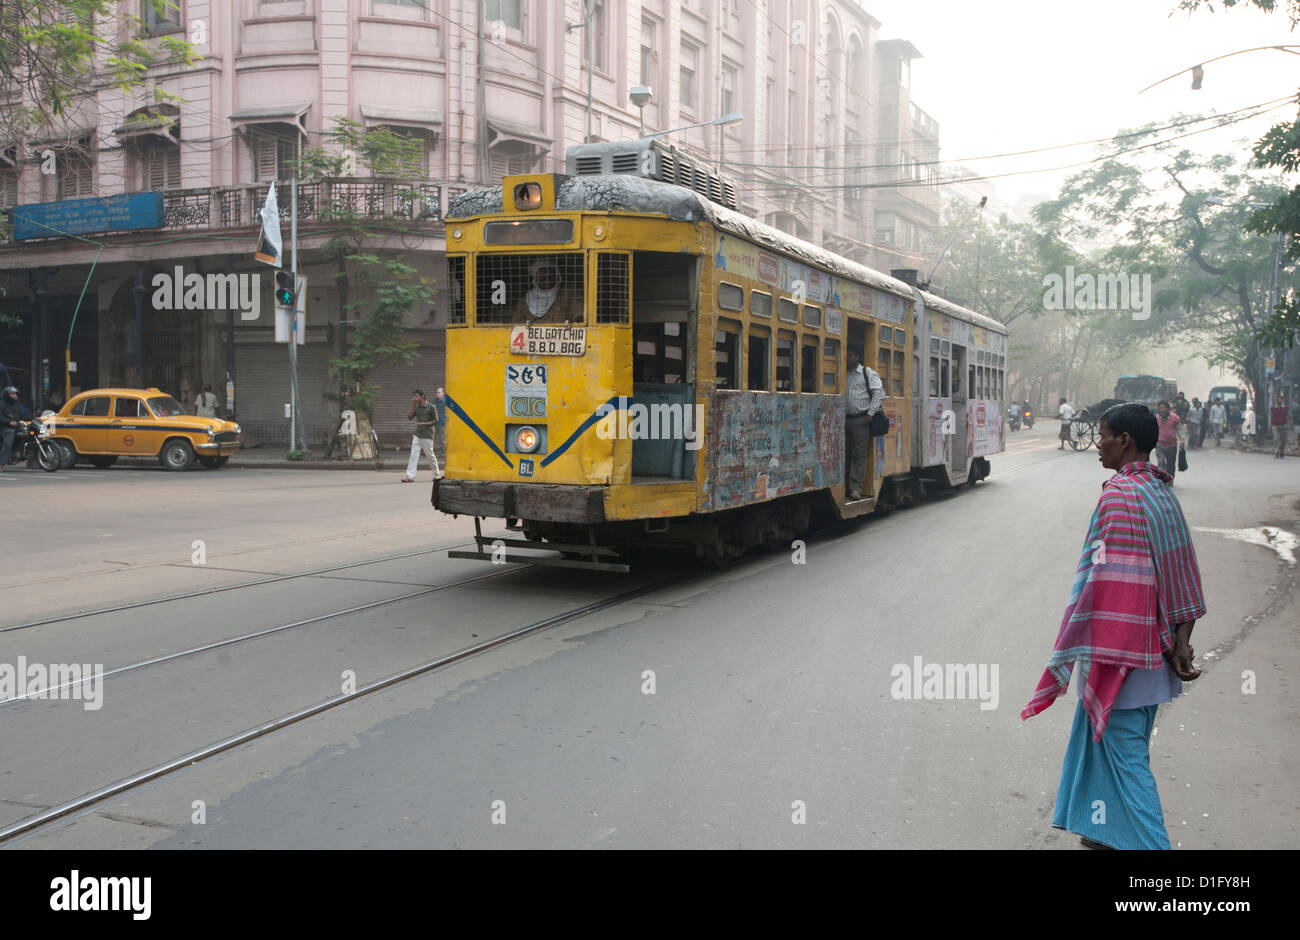 Kolkata traffic including street tram and taxi in the early morning, Kolkata (Calcutta), West Bengal, India, Asia - Stock Image